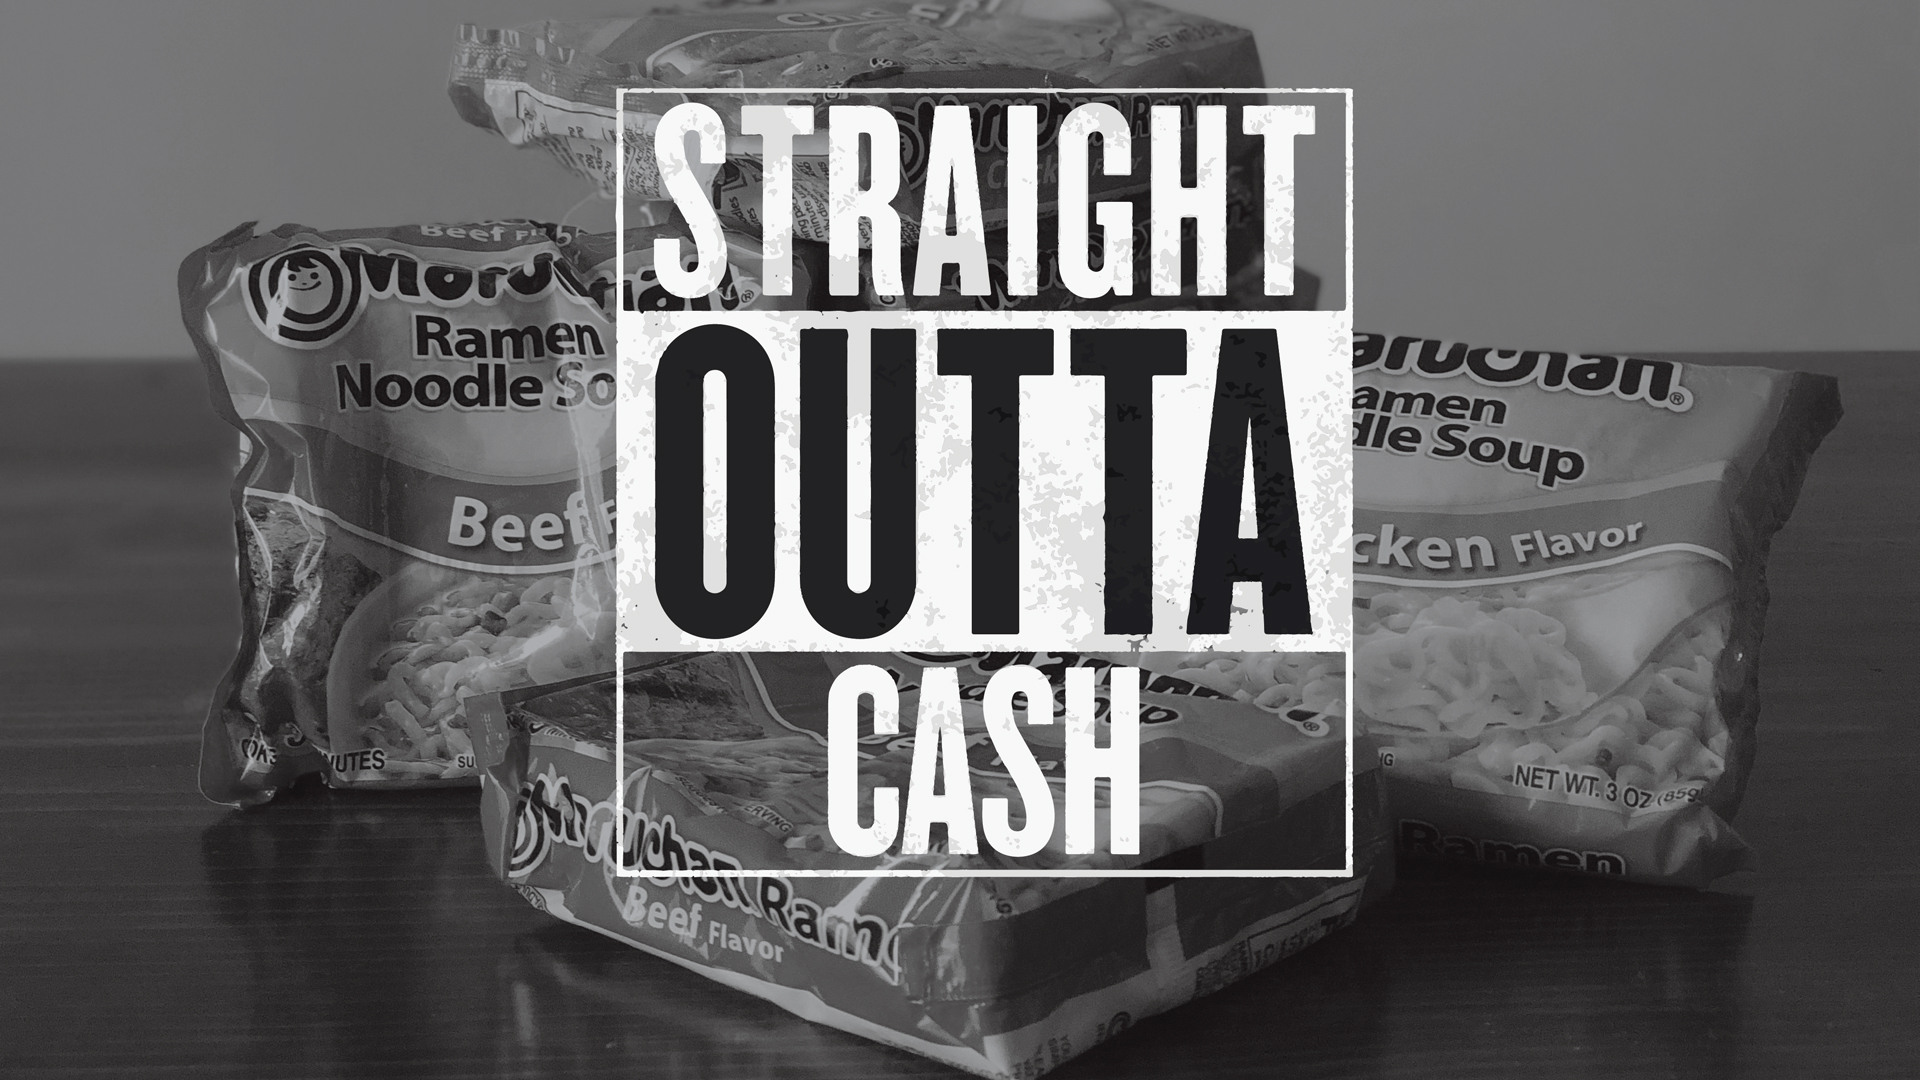 Stright-Outta-Cash-1920x1080.jpg